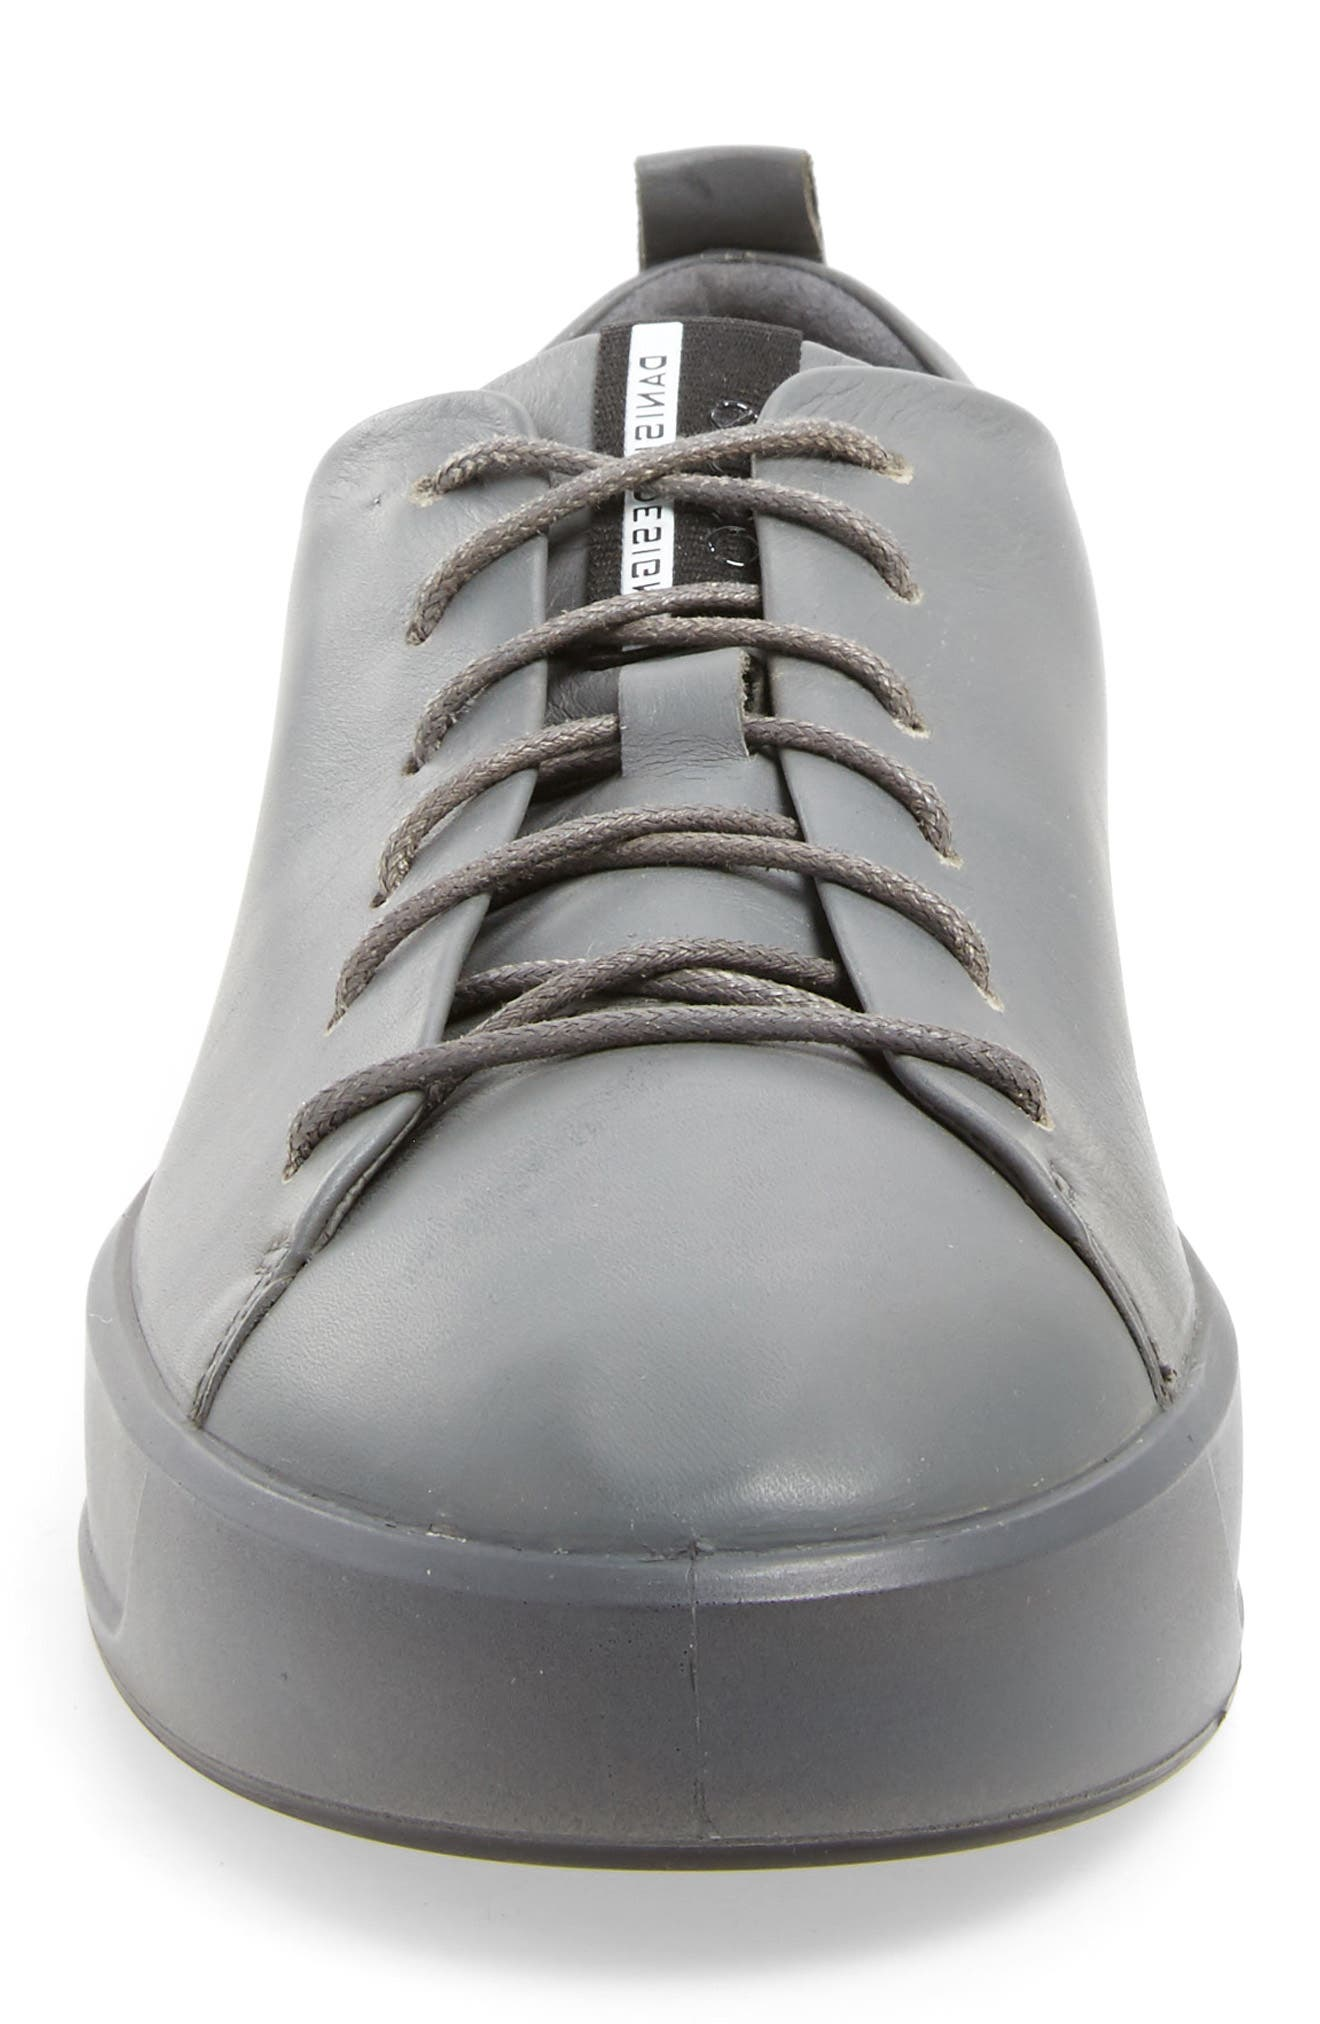 Soft 8 Sneaker,                             Alternate thumbnail 4, color,                             TITANIUM LEATHER